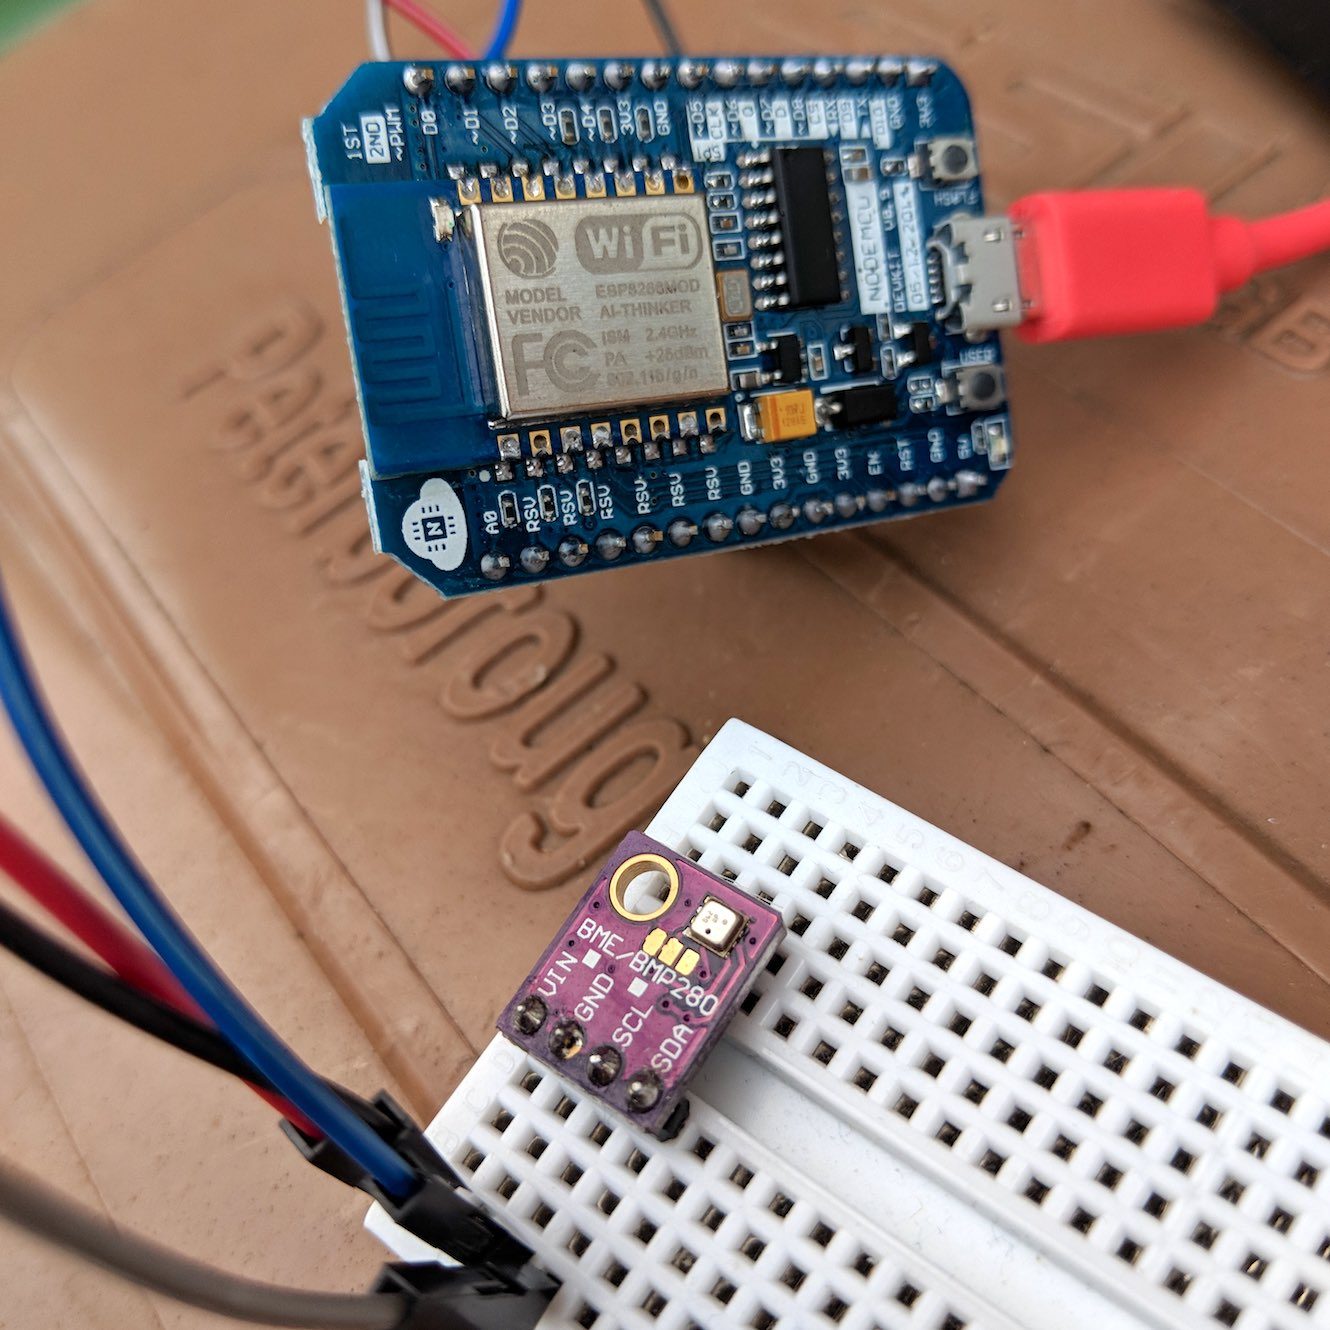 Create an IoT sensor with NodeMCU and Lua